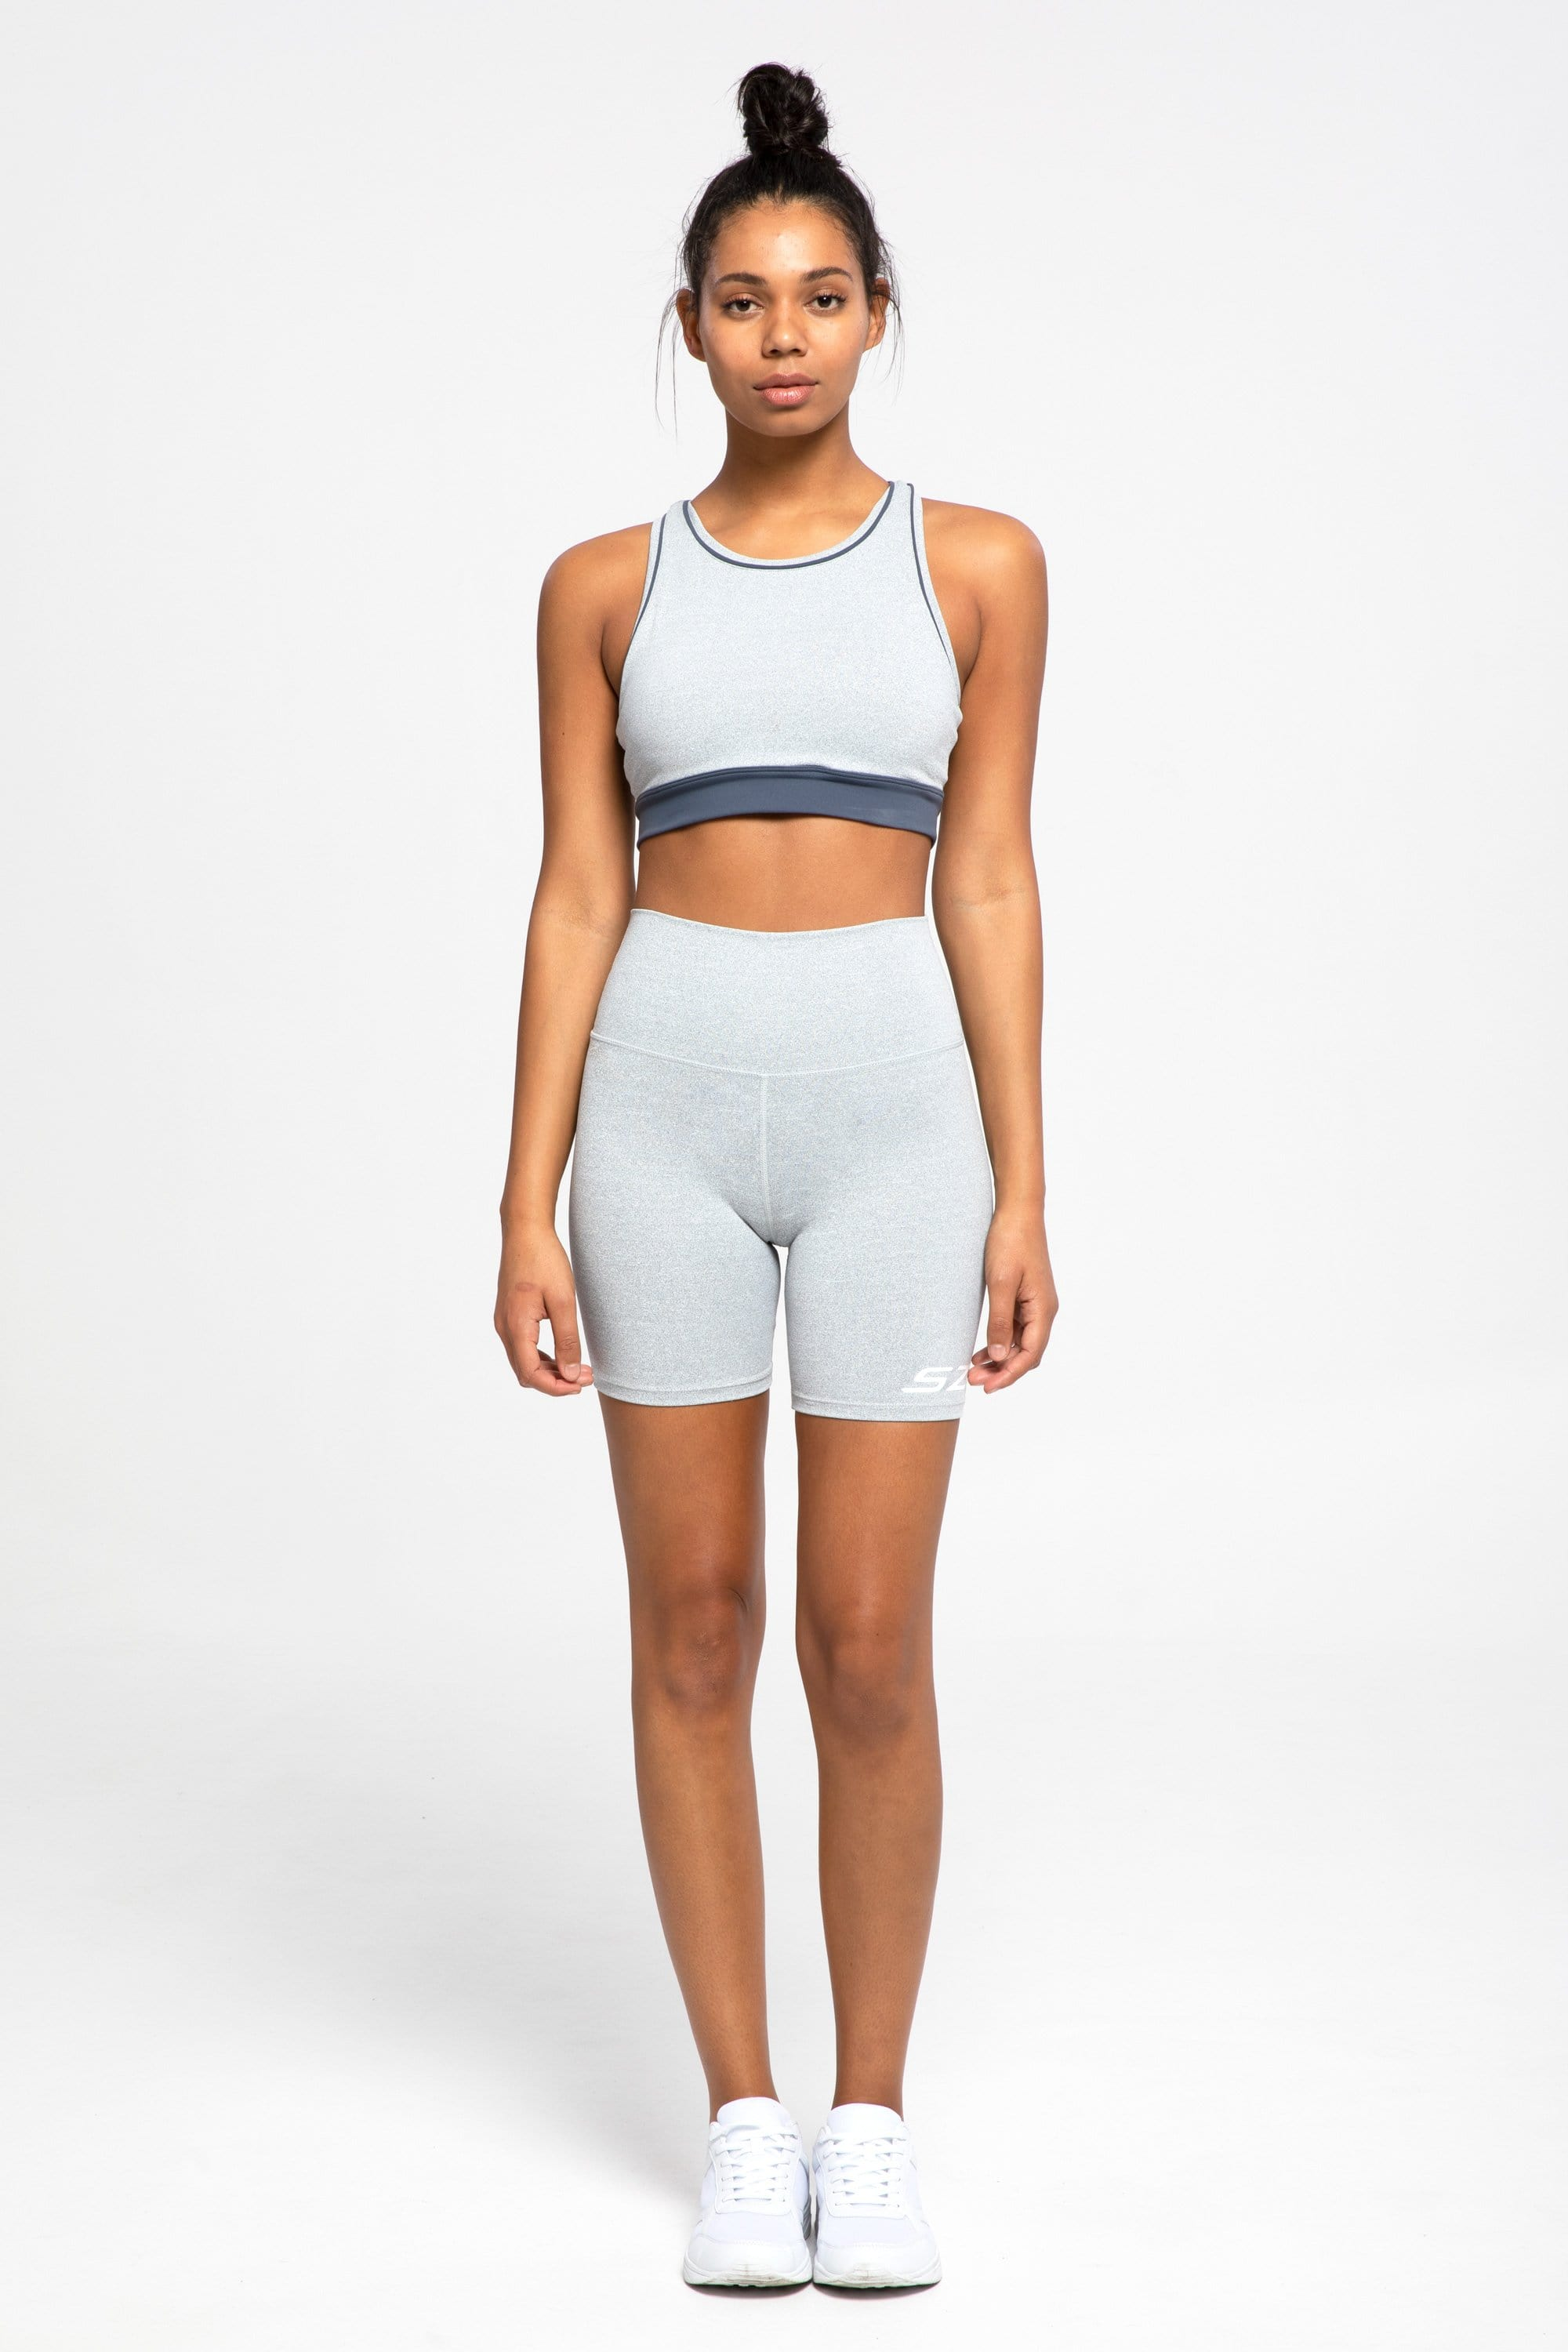 The Racer Back Crop (White Speckle)